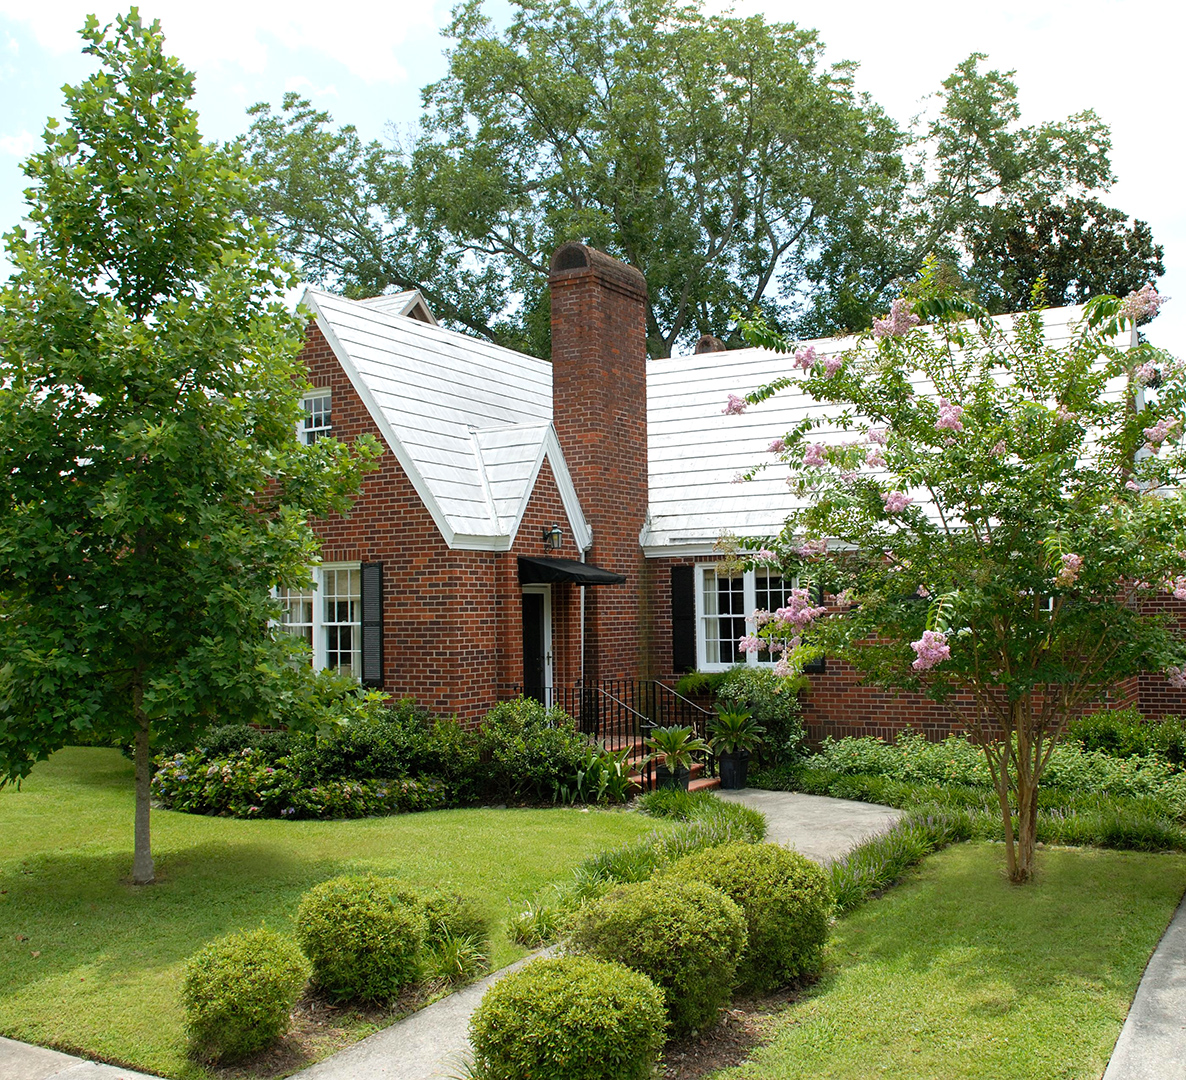 brick house with white roof and trees and bushes